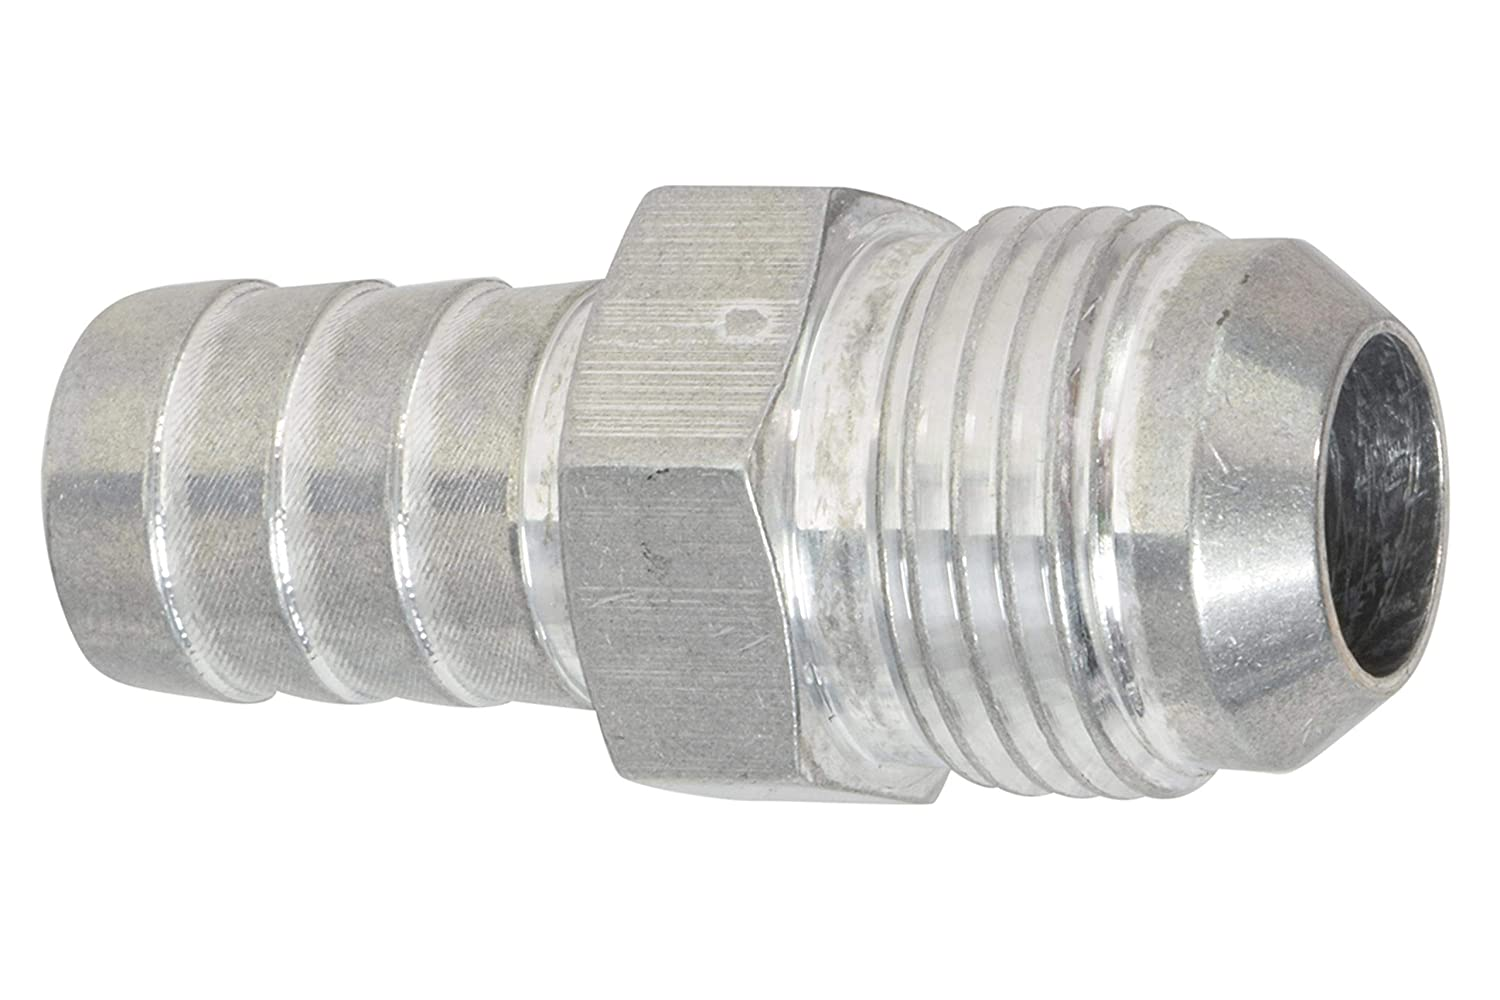 10AN Straight Push Lock Hose End Fitting Connector Adapter for 5//8 Fuel Hose